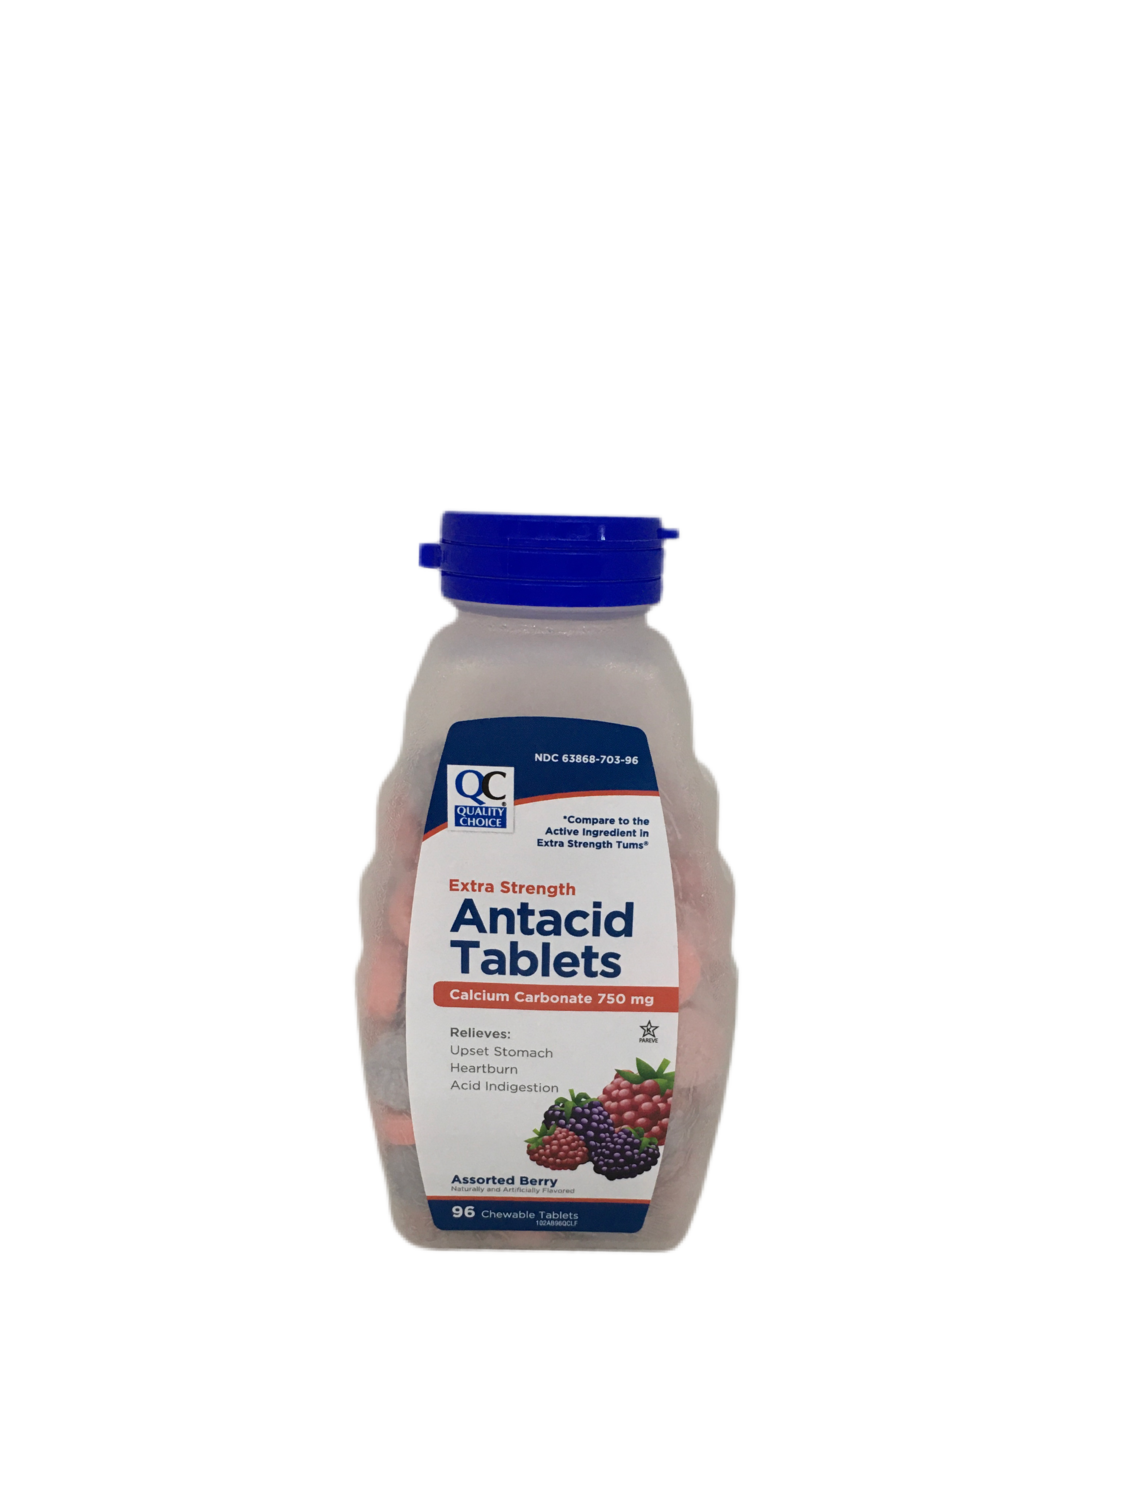 QC Antacid Extra Strength Tablets